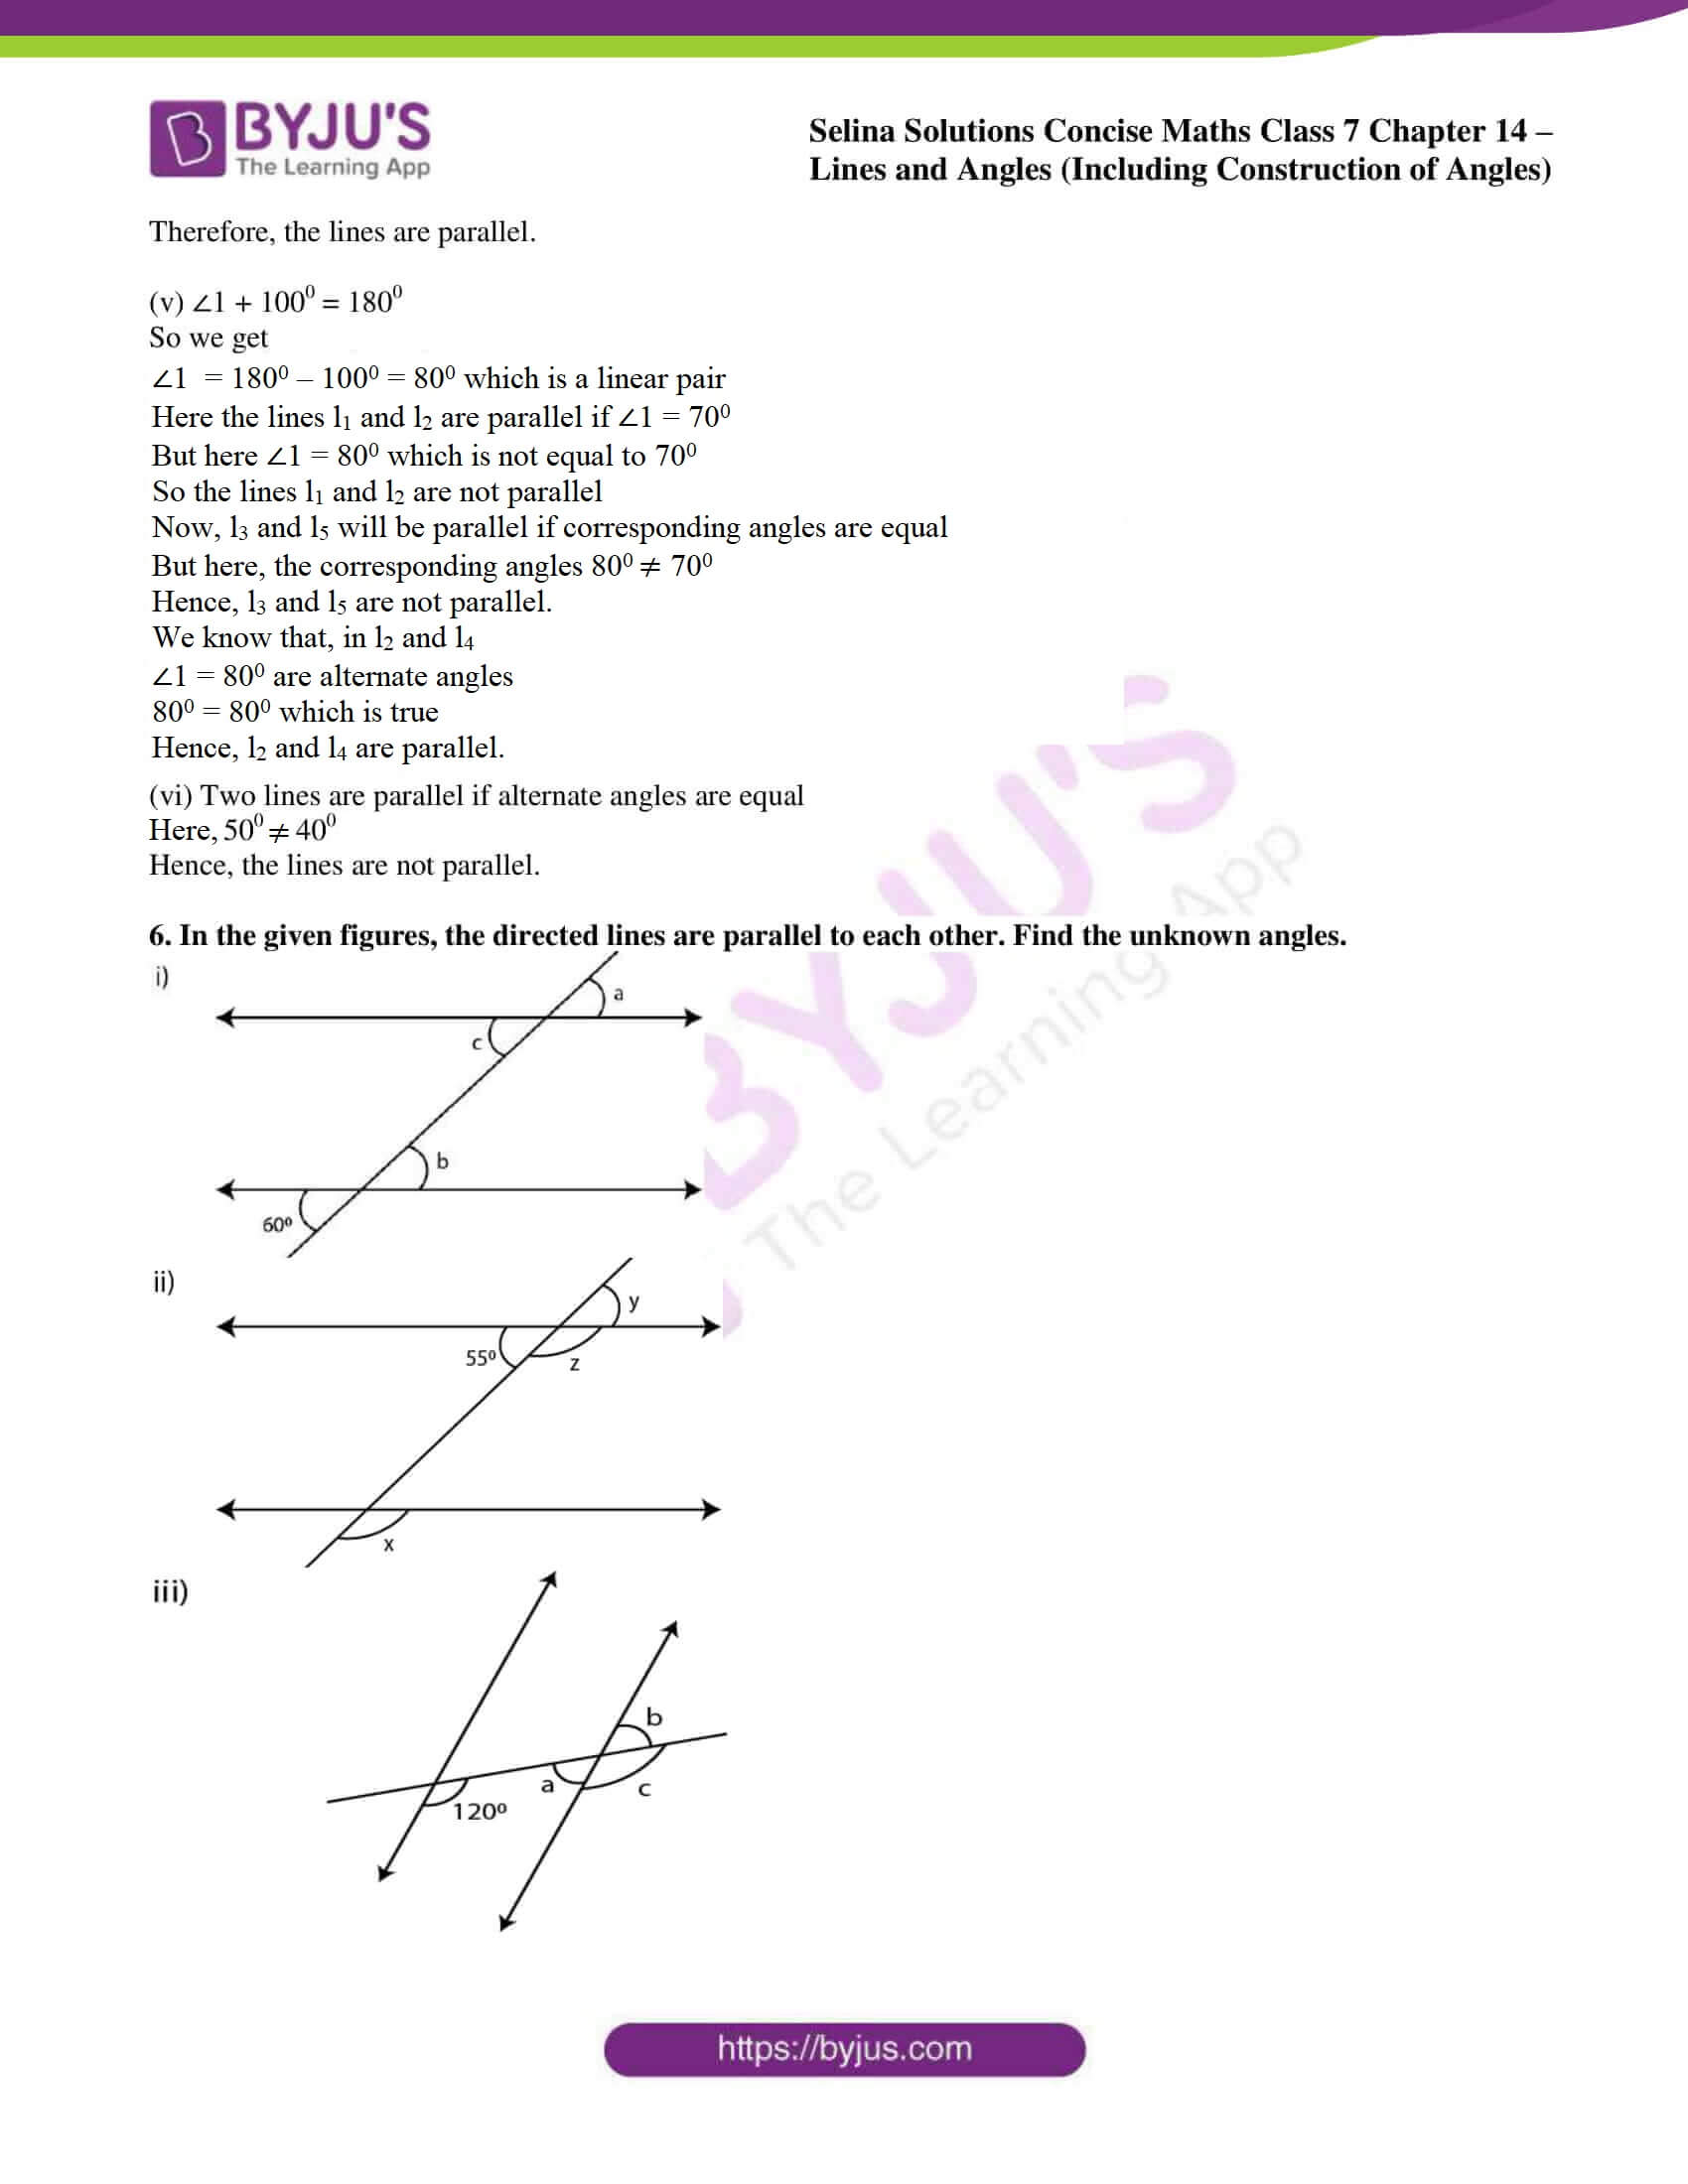 selina solution concise maths class 7 ch 14b 06